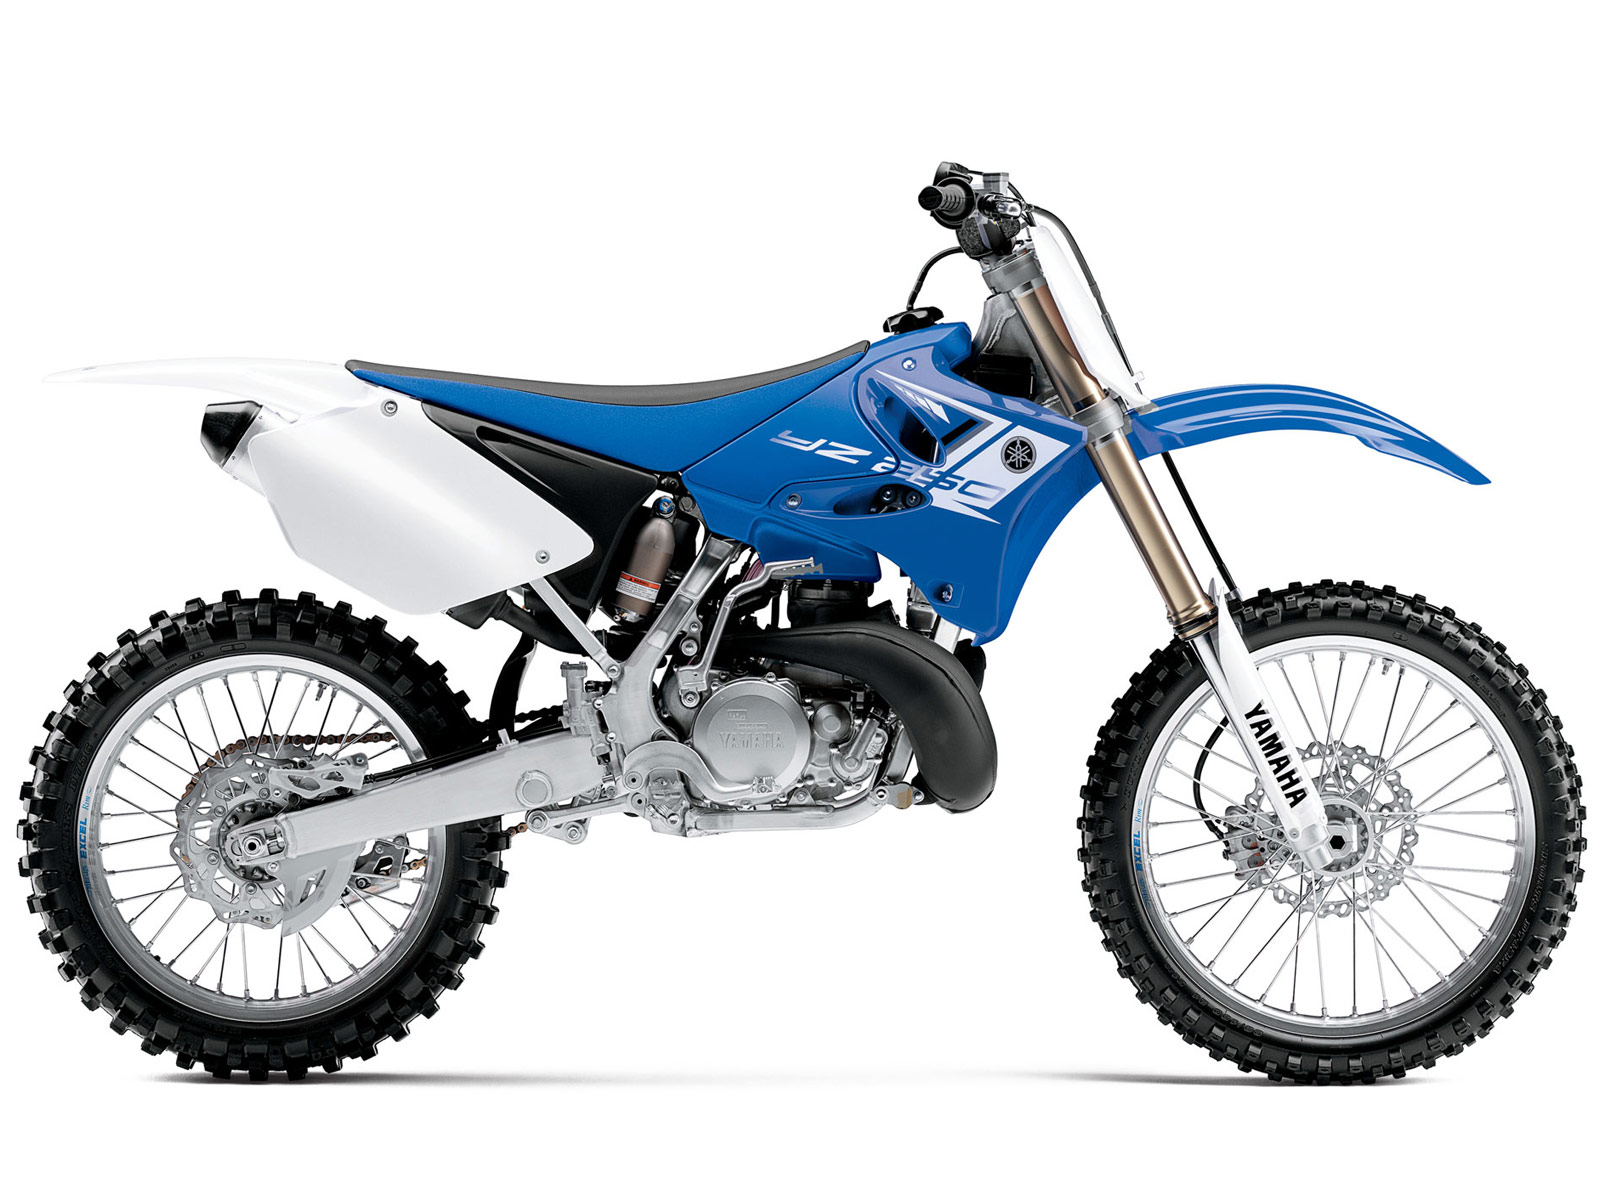 2013 yamaha yz250 2 stroke review photos and specifications